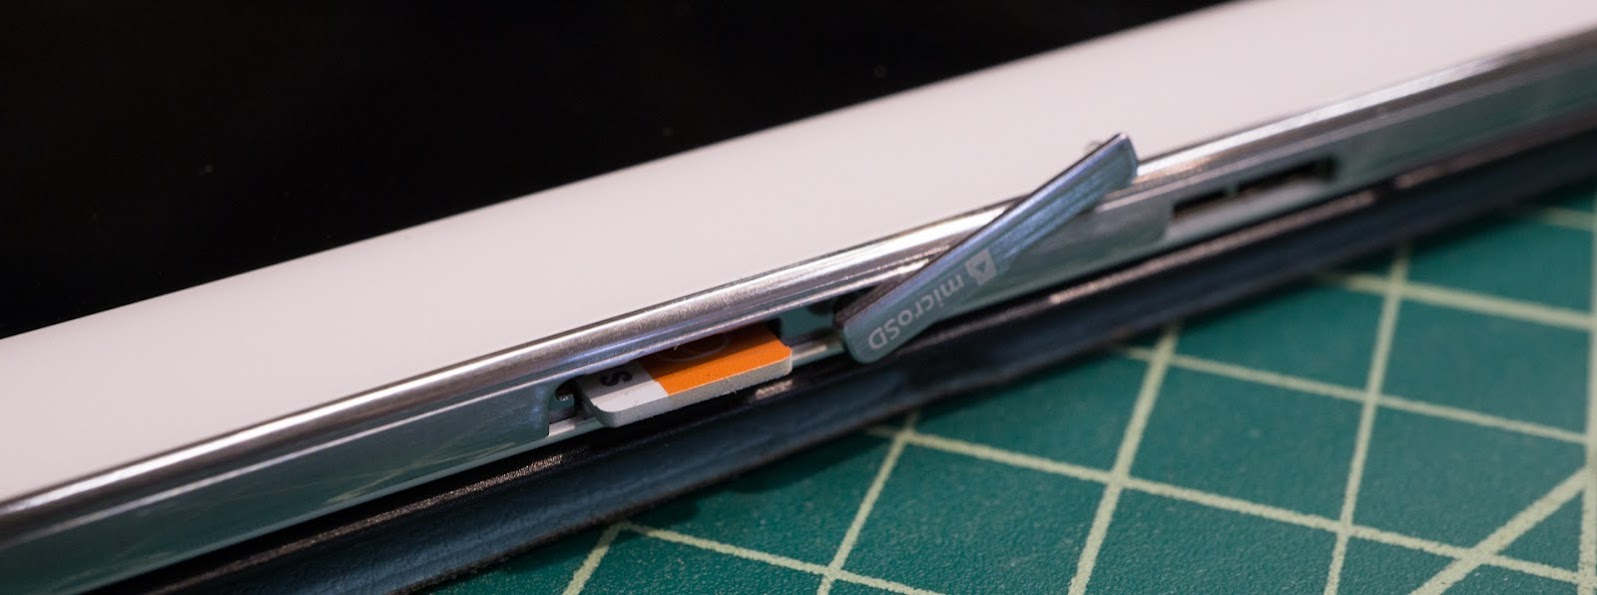 samsung galecy s3 how to turn off low battery warning